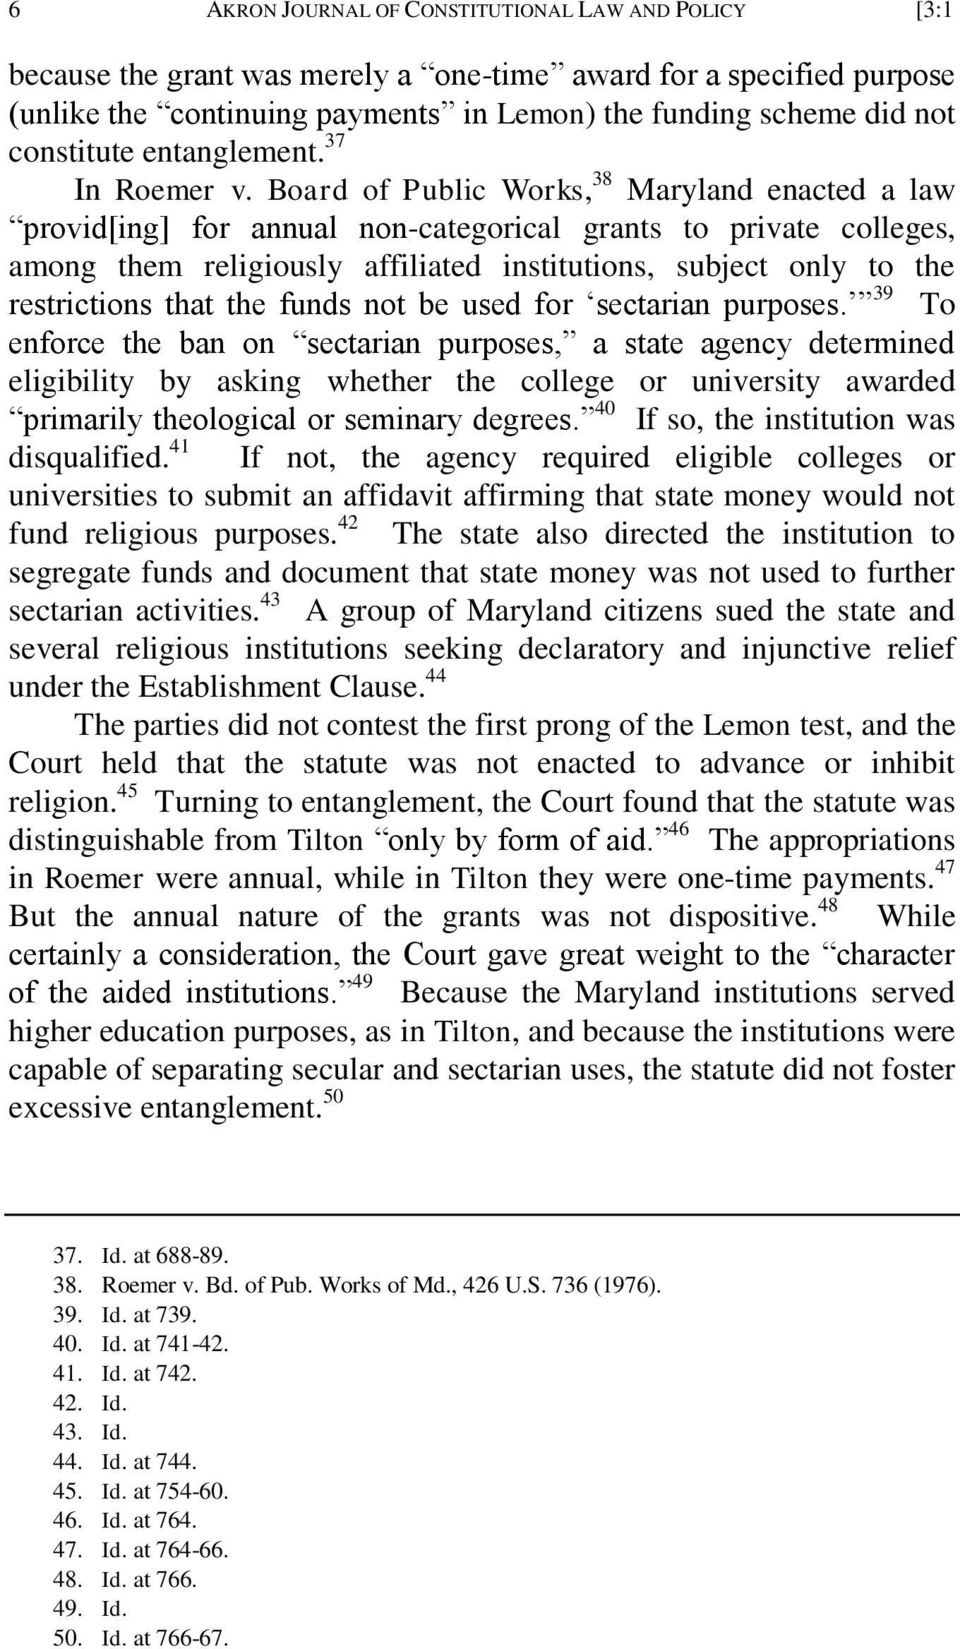 Board of Public Works, 38 Maryland enacted a law provid[ing] for annual non-categorical grants to private colleges, among them religiously affiliated institutions, subject only to the restrictions